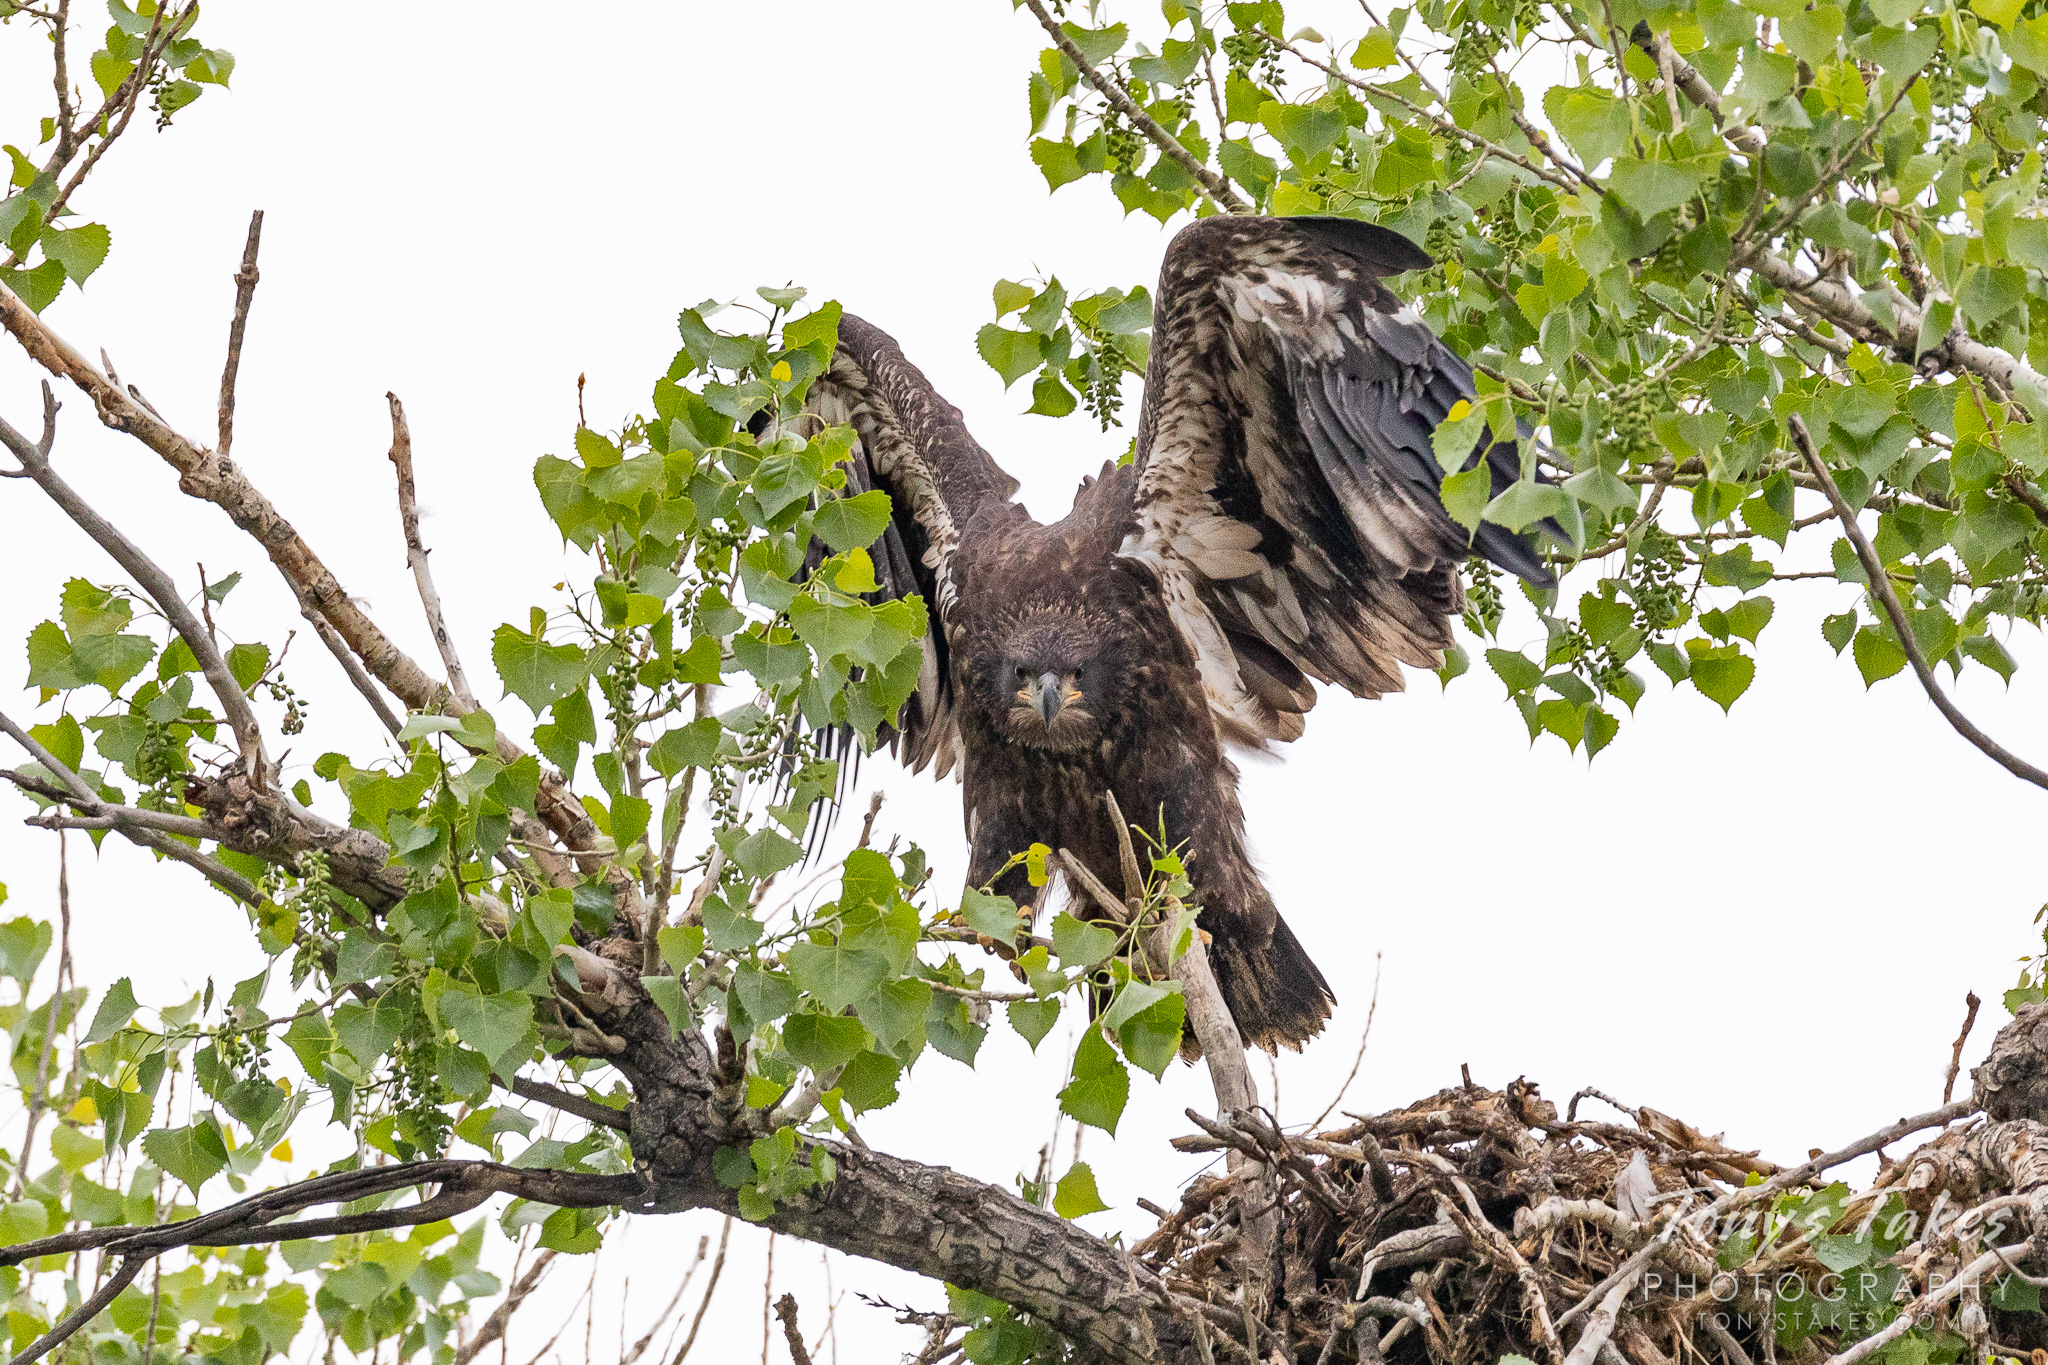 A young bald eagle tests its wings by hopping from the nest to a branch. (© Tony's Takes)